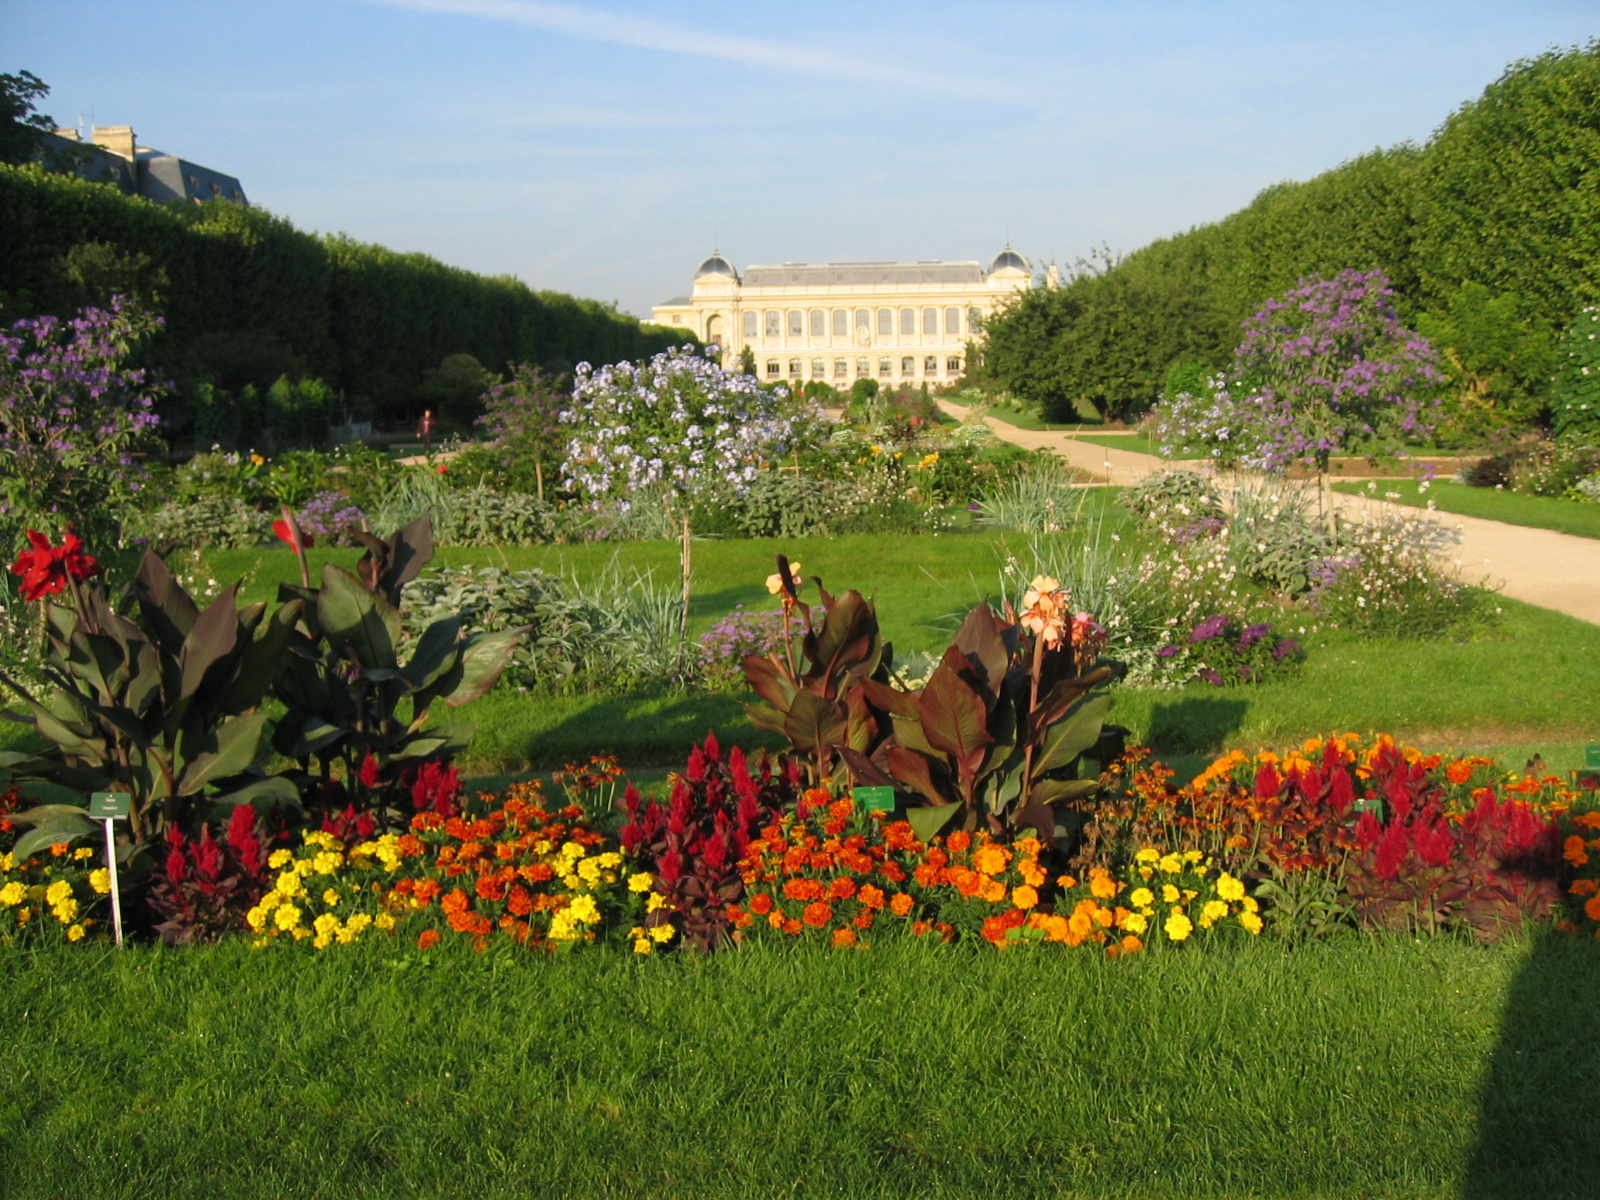 Grand galerie and flowers